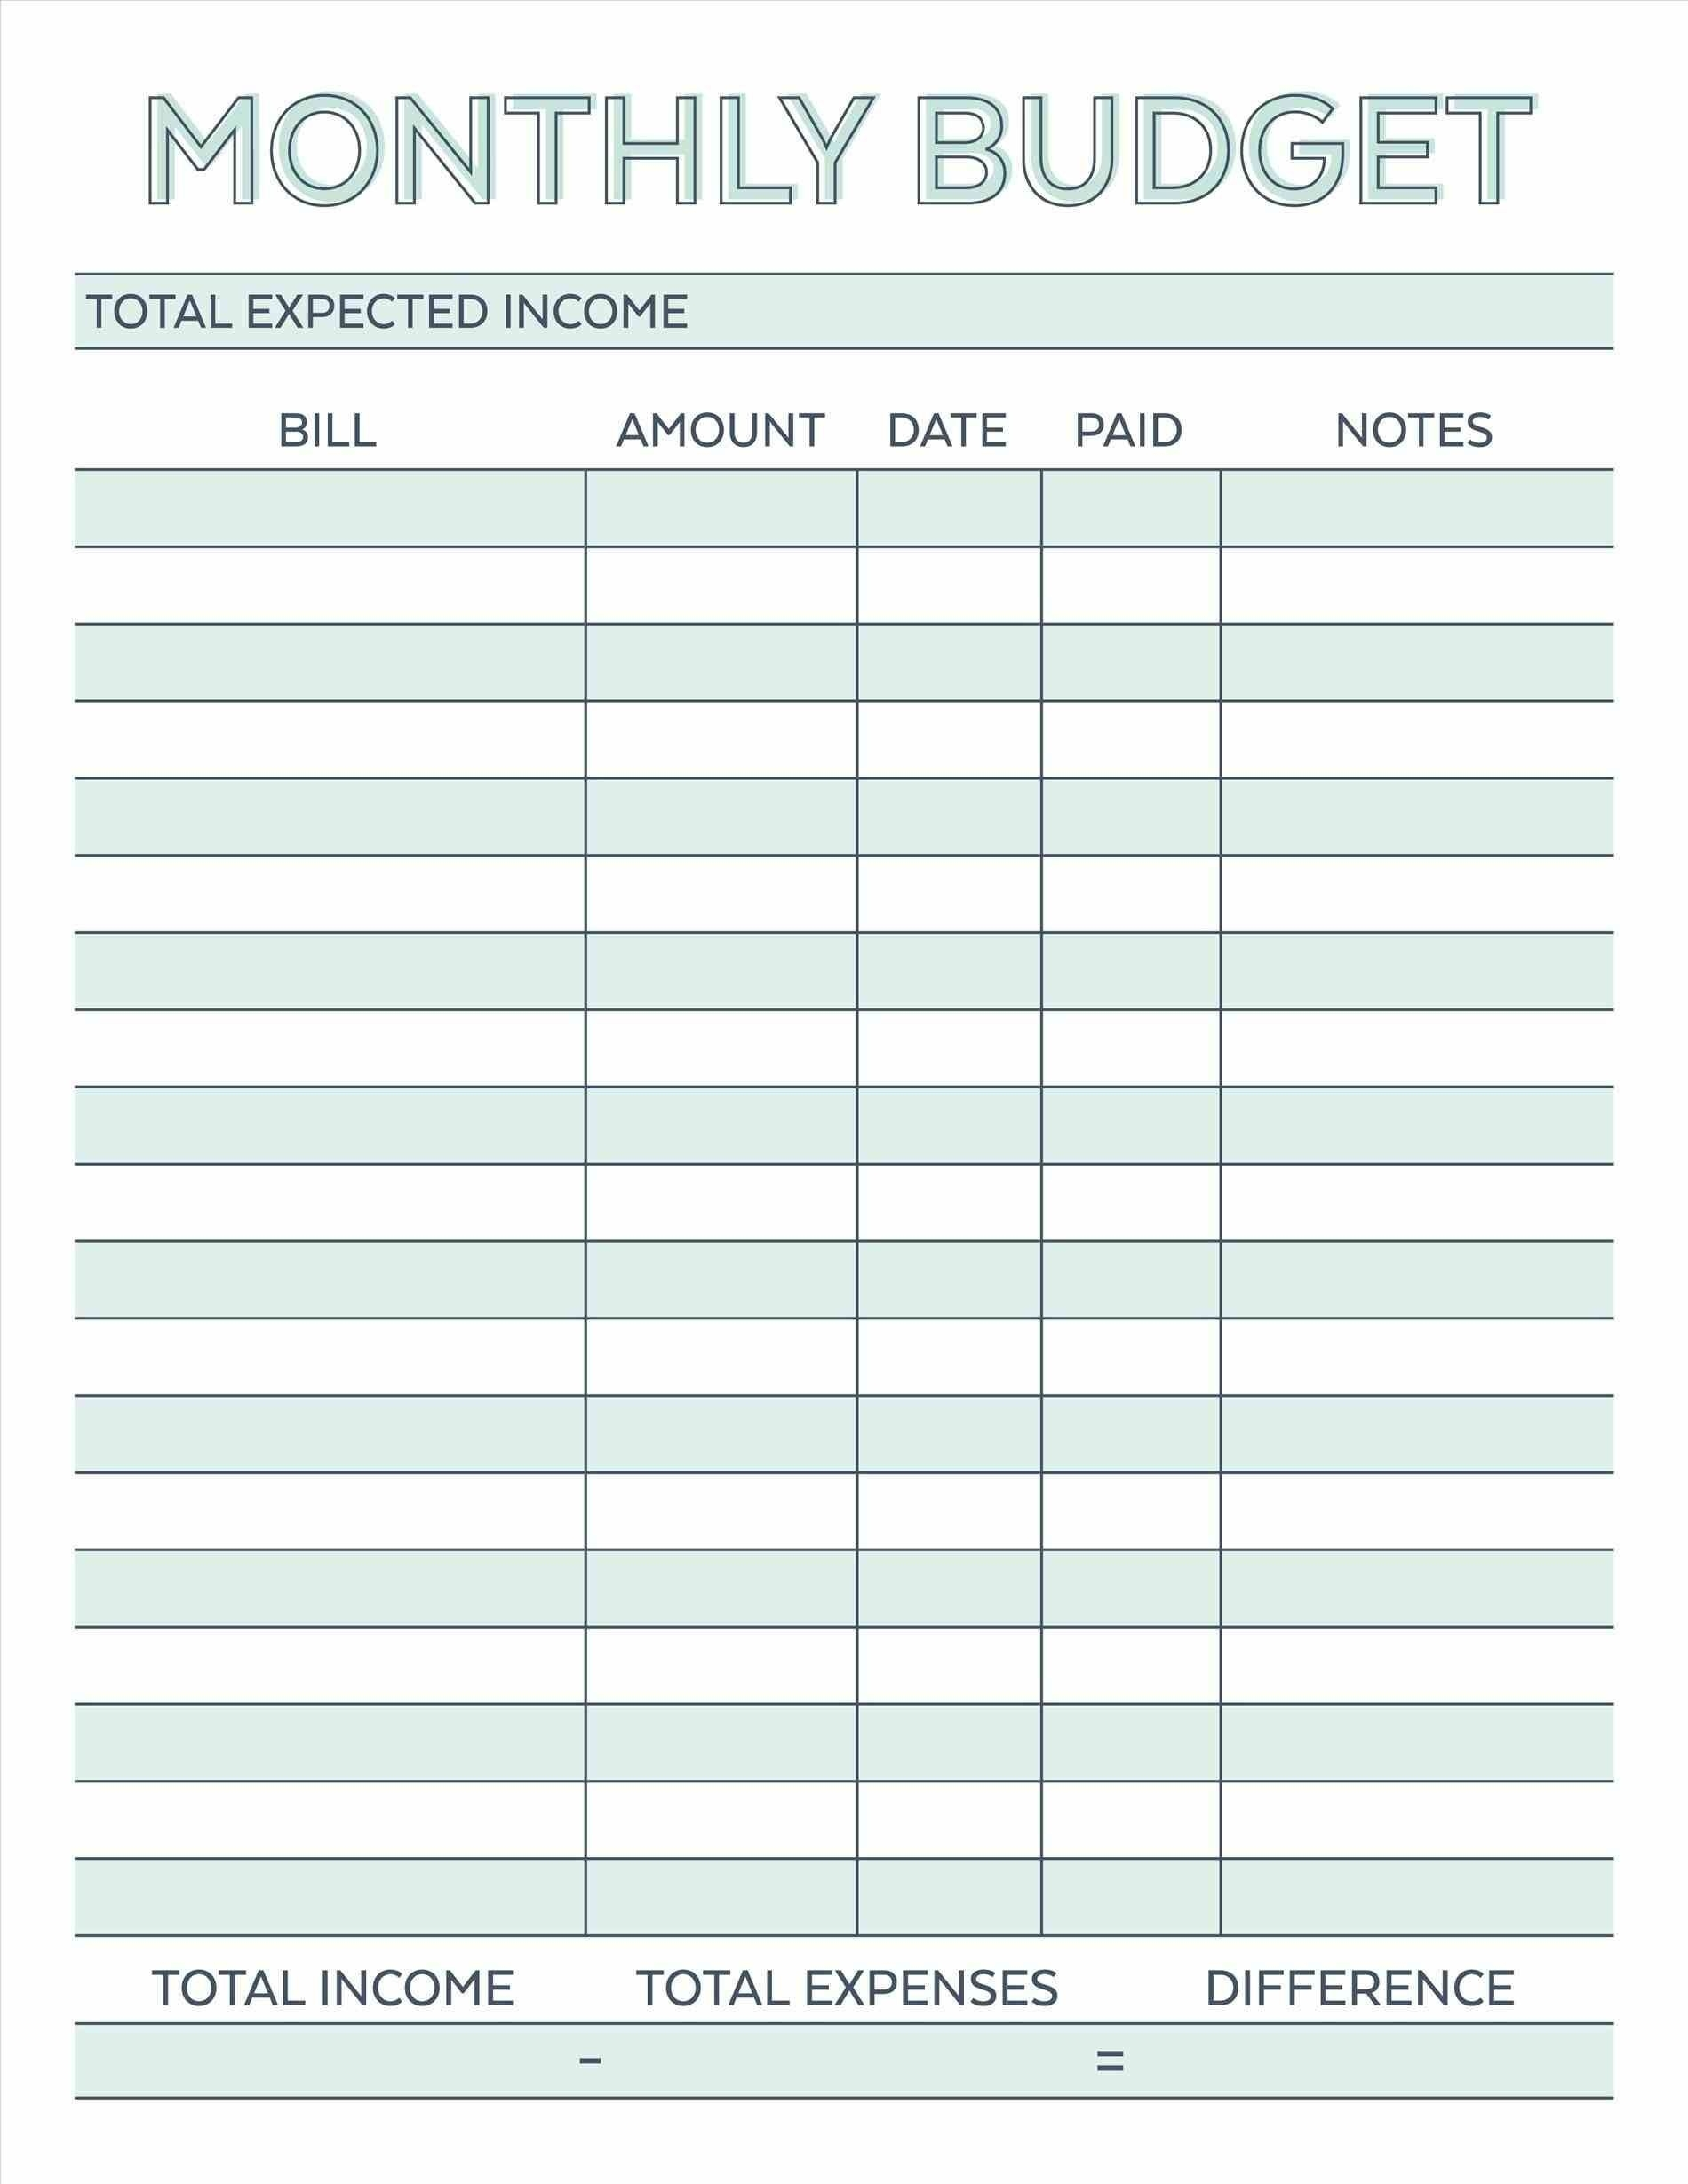 Budget Planner Planner Worksheet Monthly Bills Template Free  Monthly Bills Template With Account Number And Address